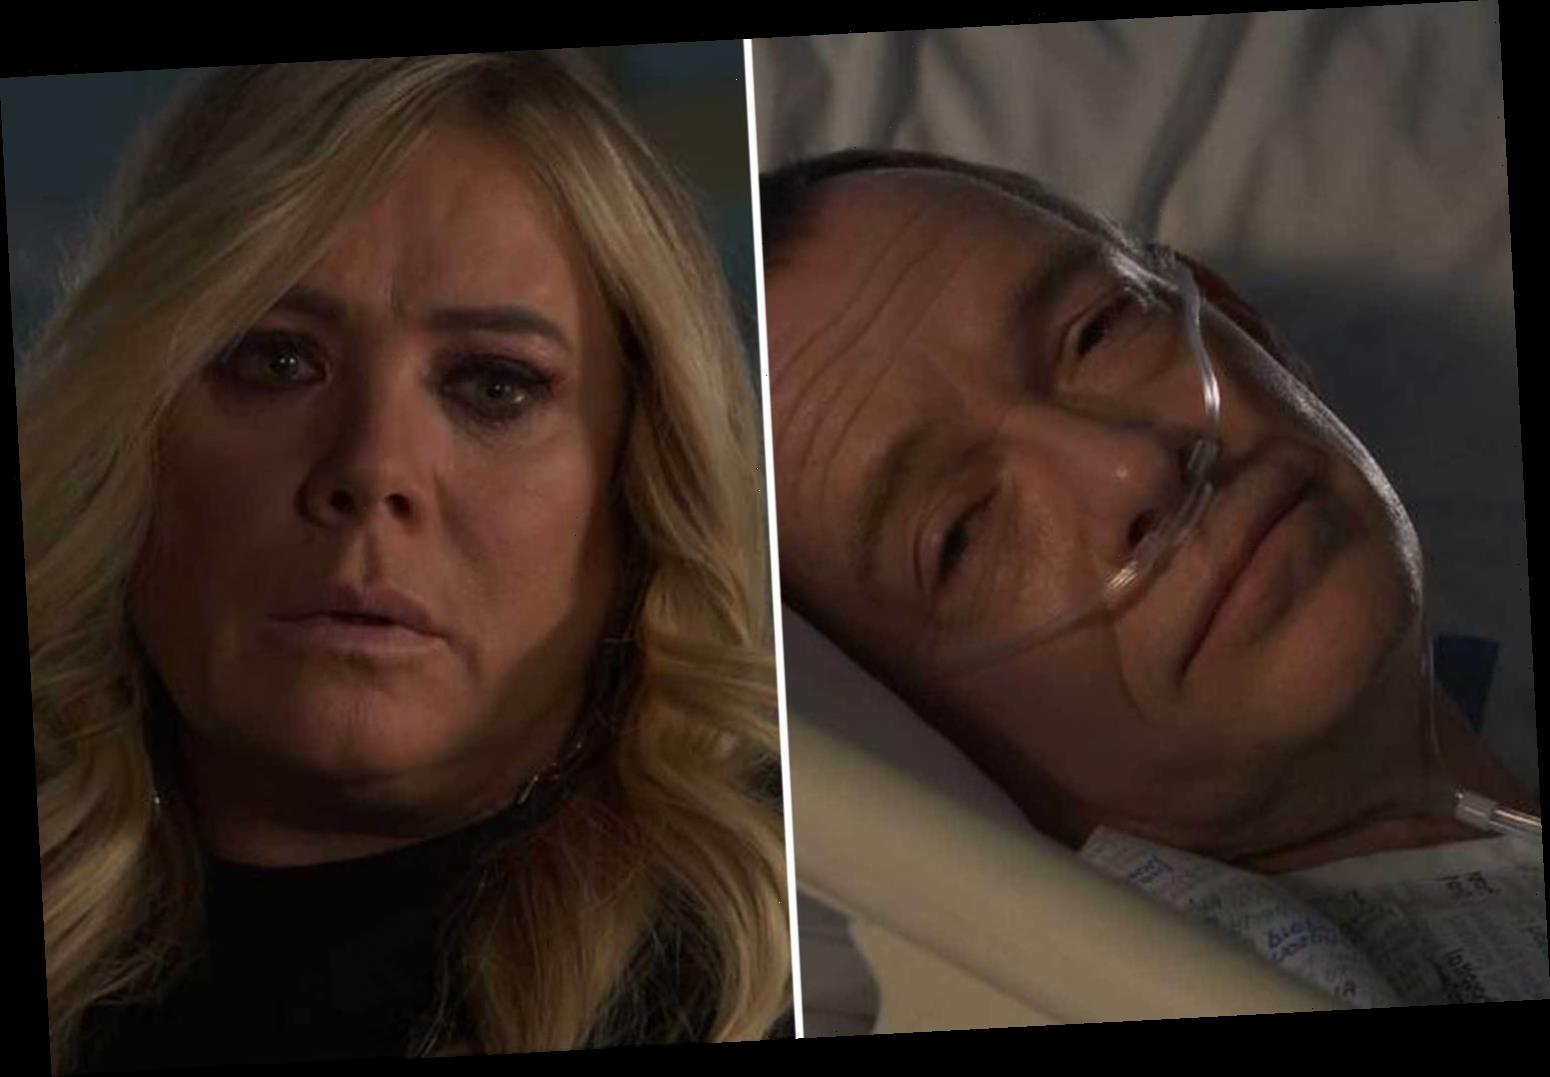 EastEnders shock as Ian Beale PROPOSES to Sharon Watts after being told he may die – and she considers it